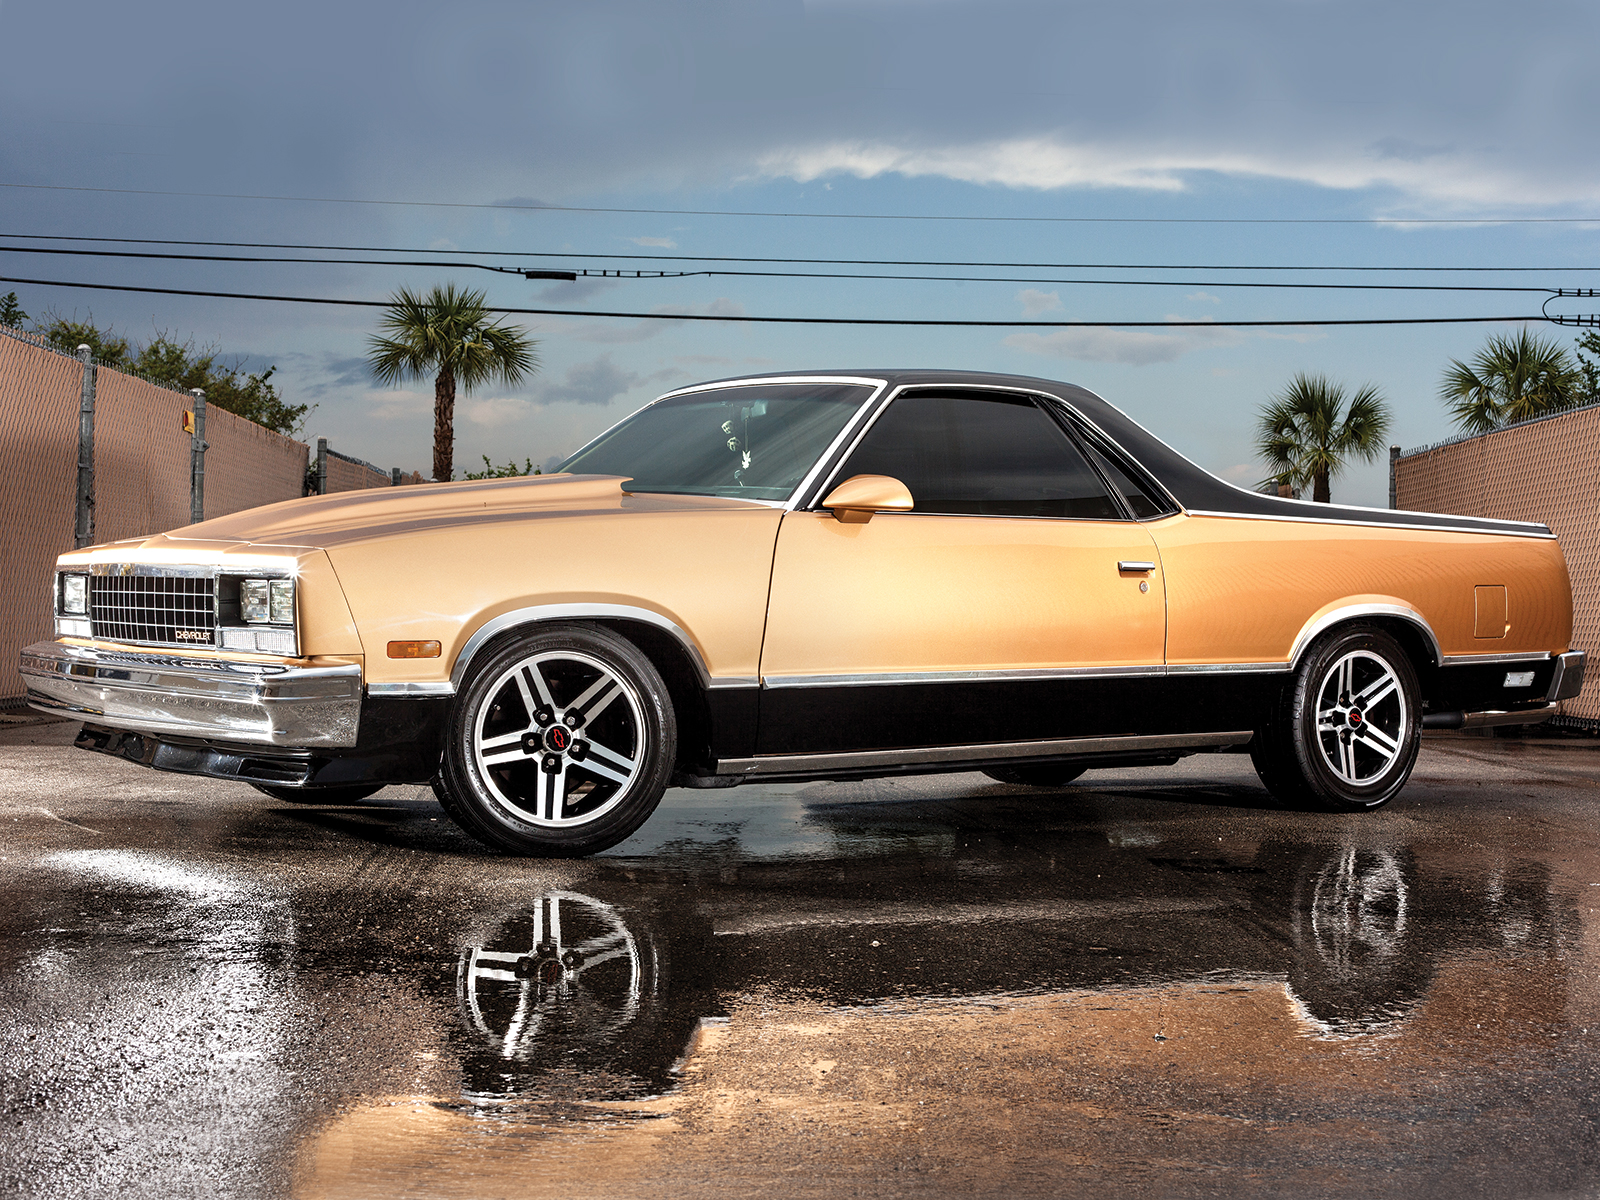 1986 chevrolet el camino front side view